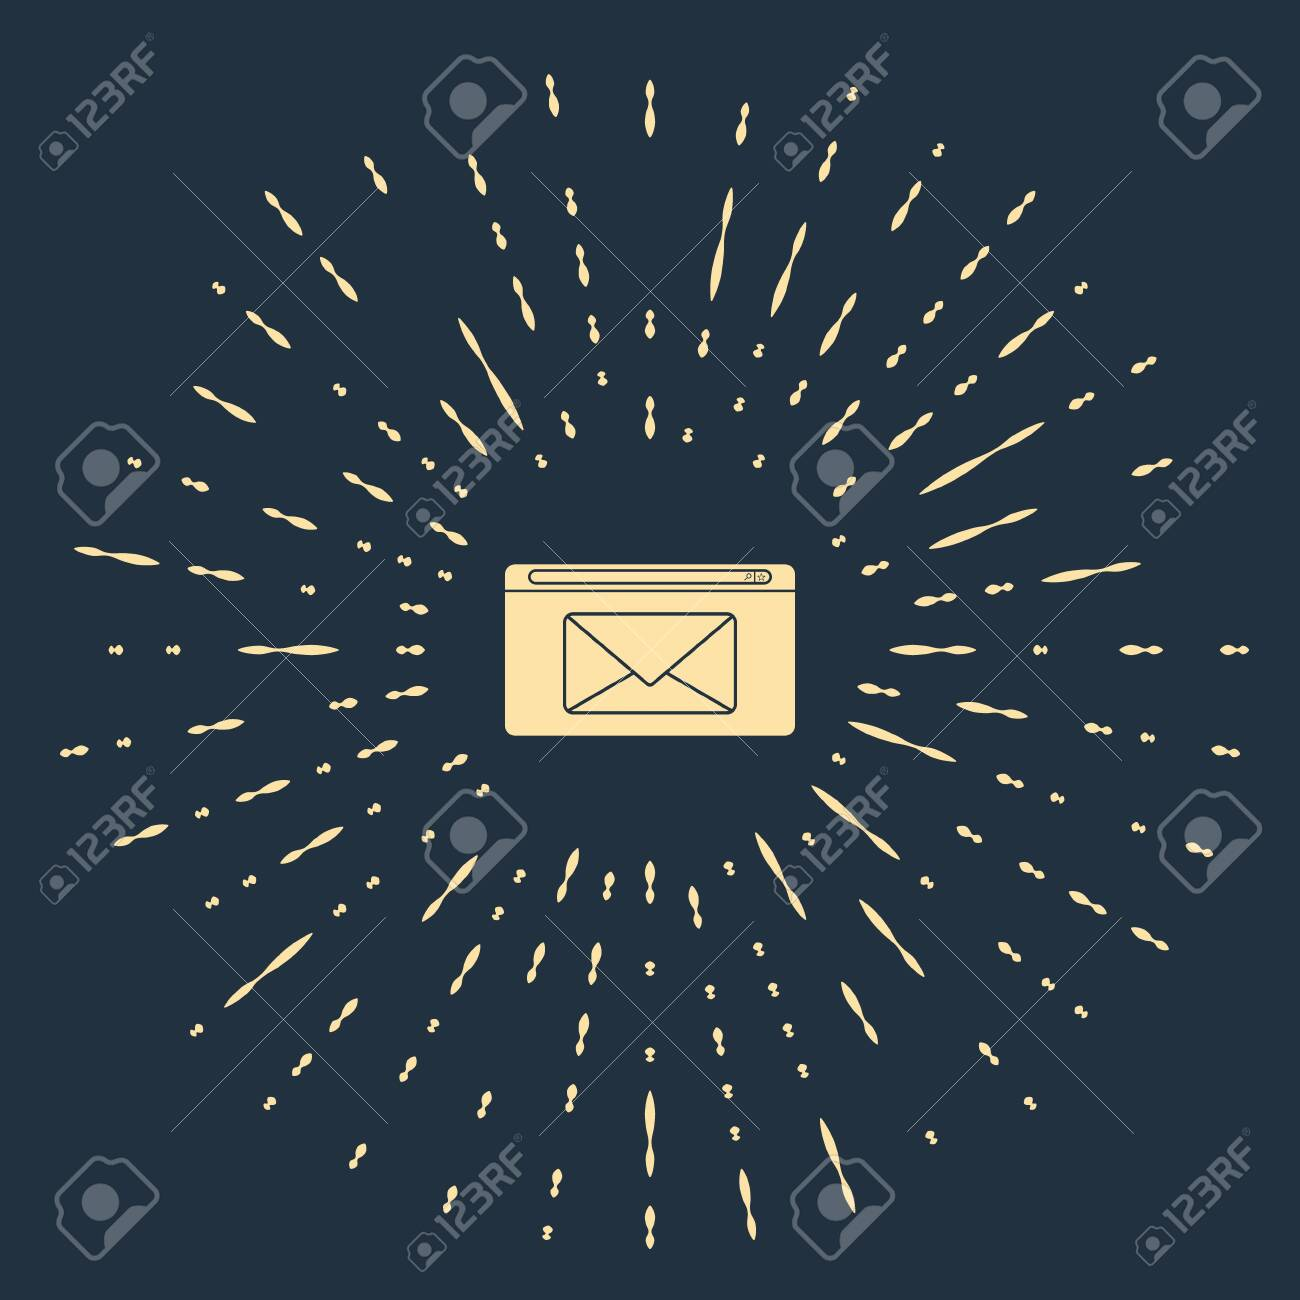 Beige Mail And E Mail Icon Isolated On Blue Background Envelope Royalty Free Cliparts Vectors And Stock Illustration Image 139063783